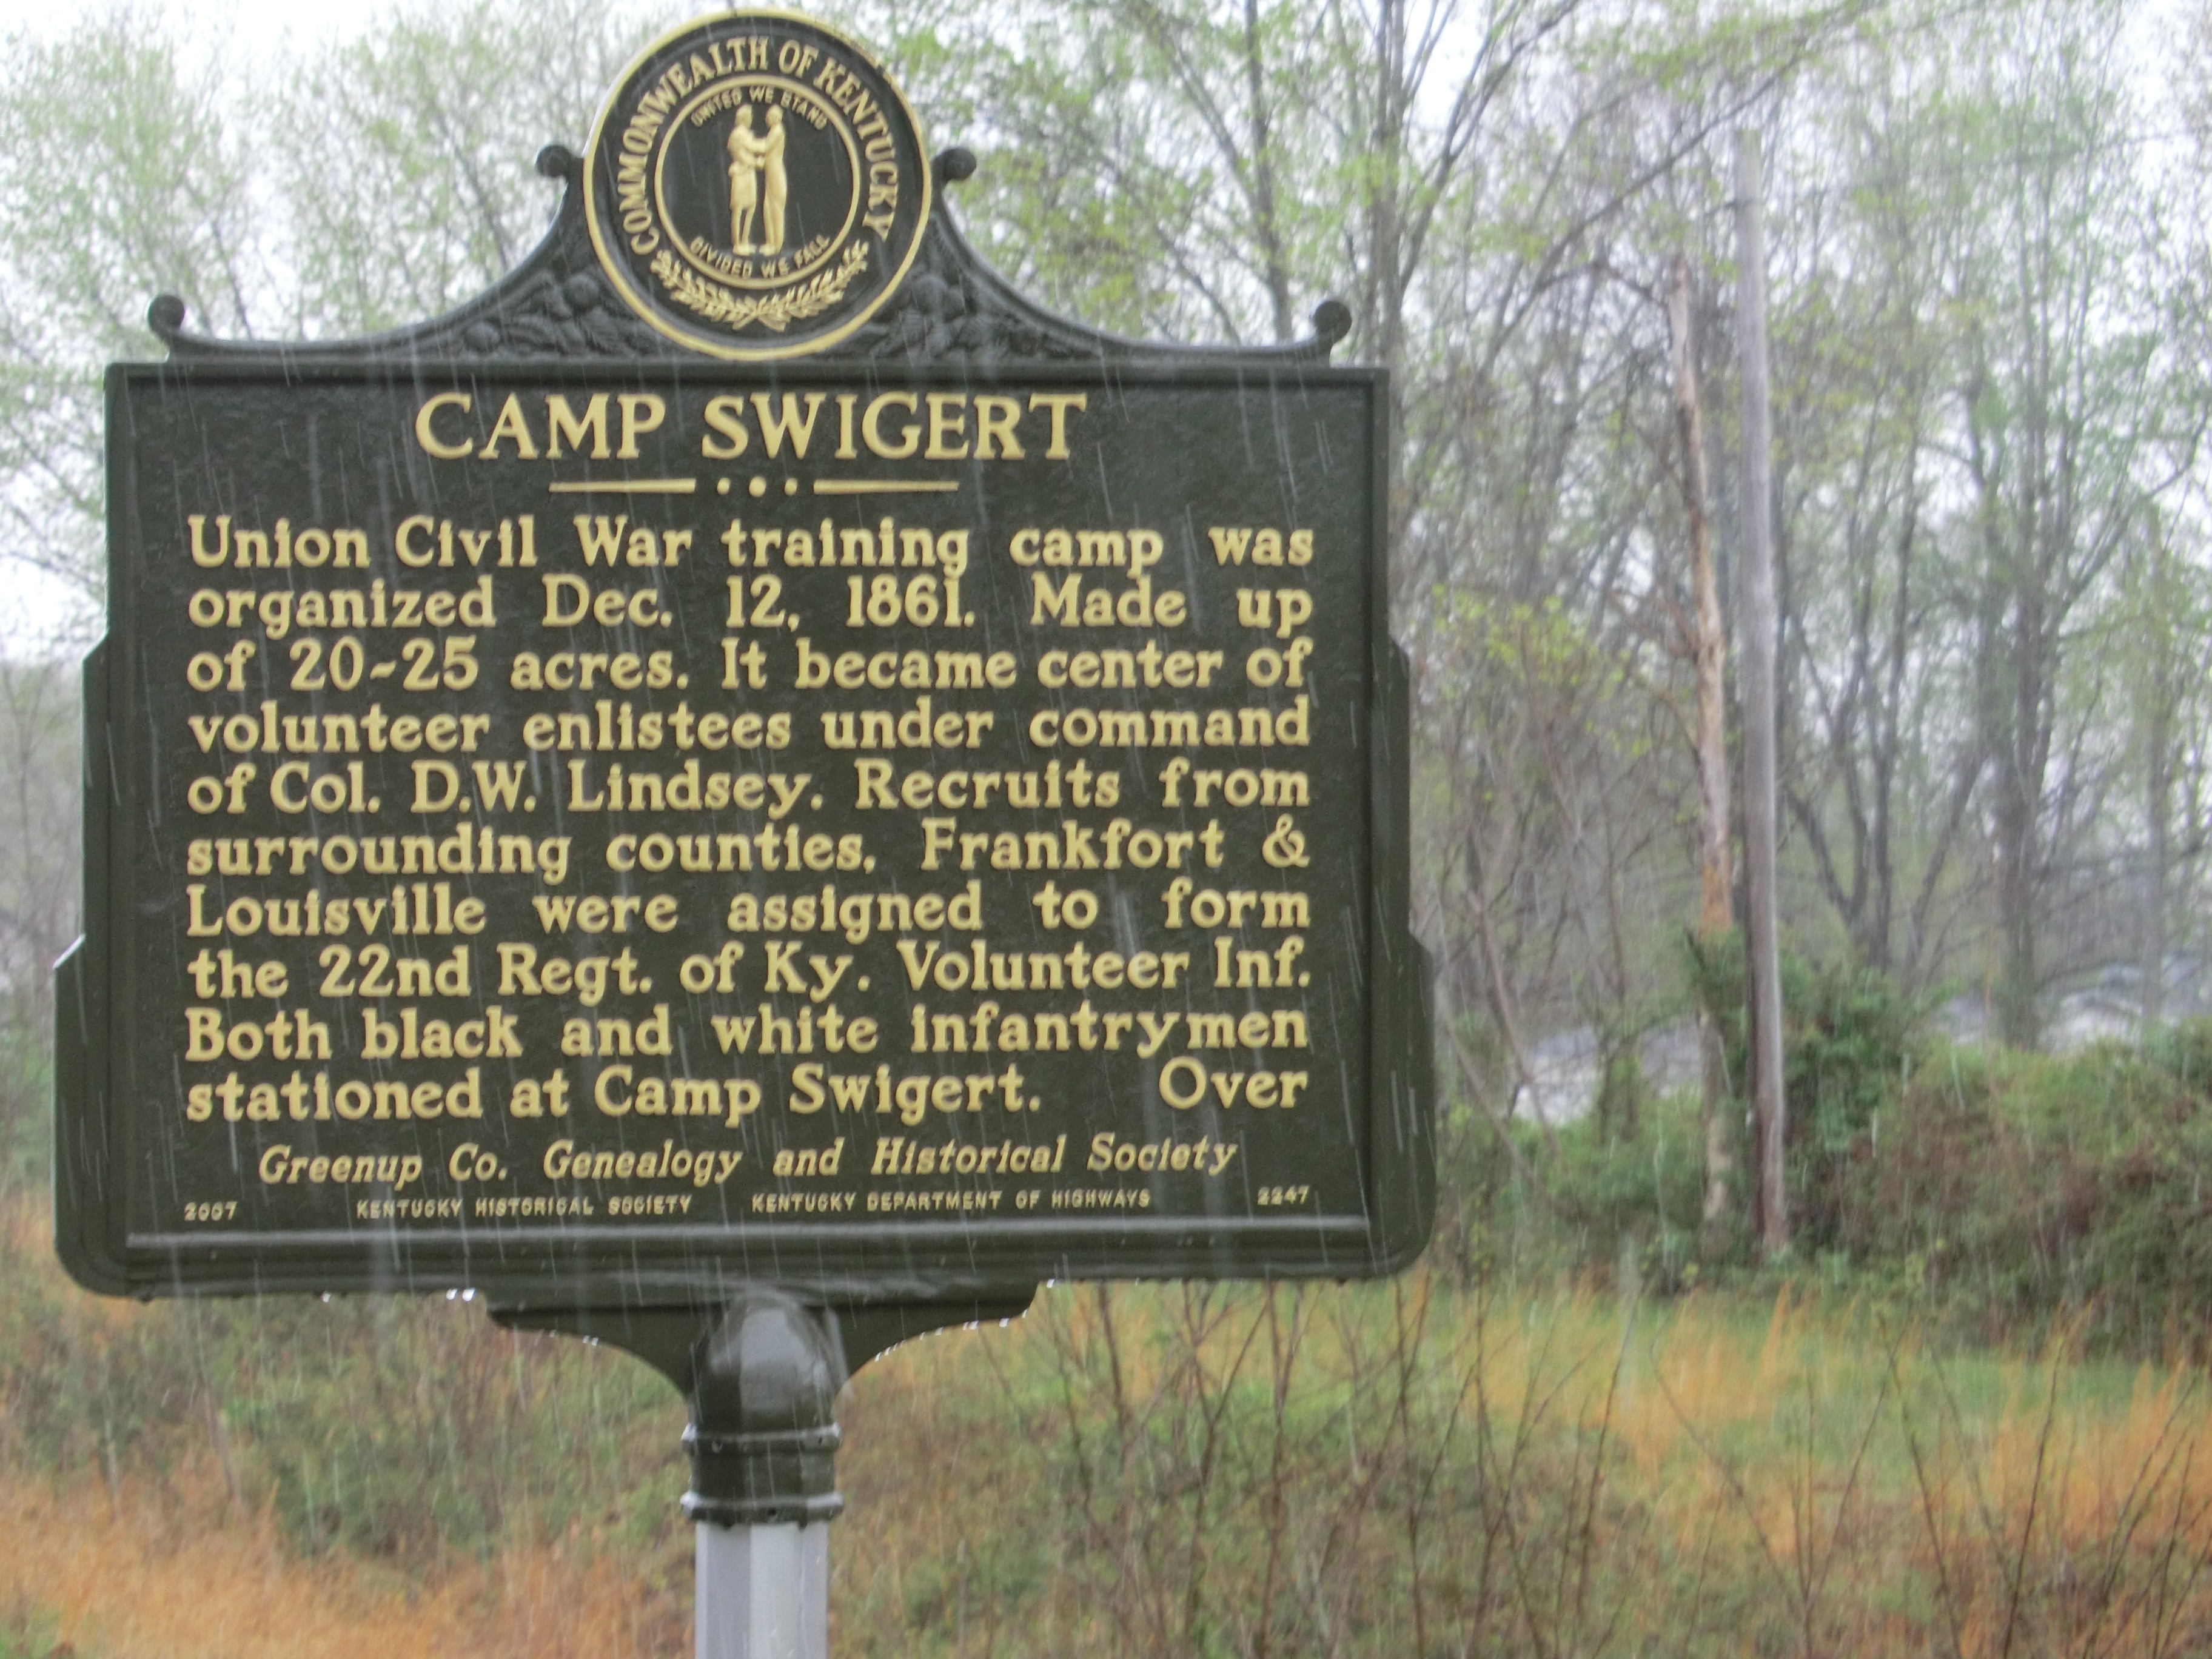 Camp Swigert Marker-Side 1